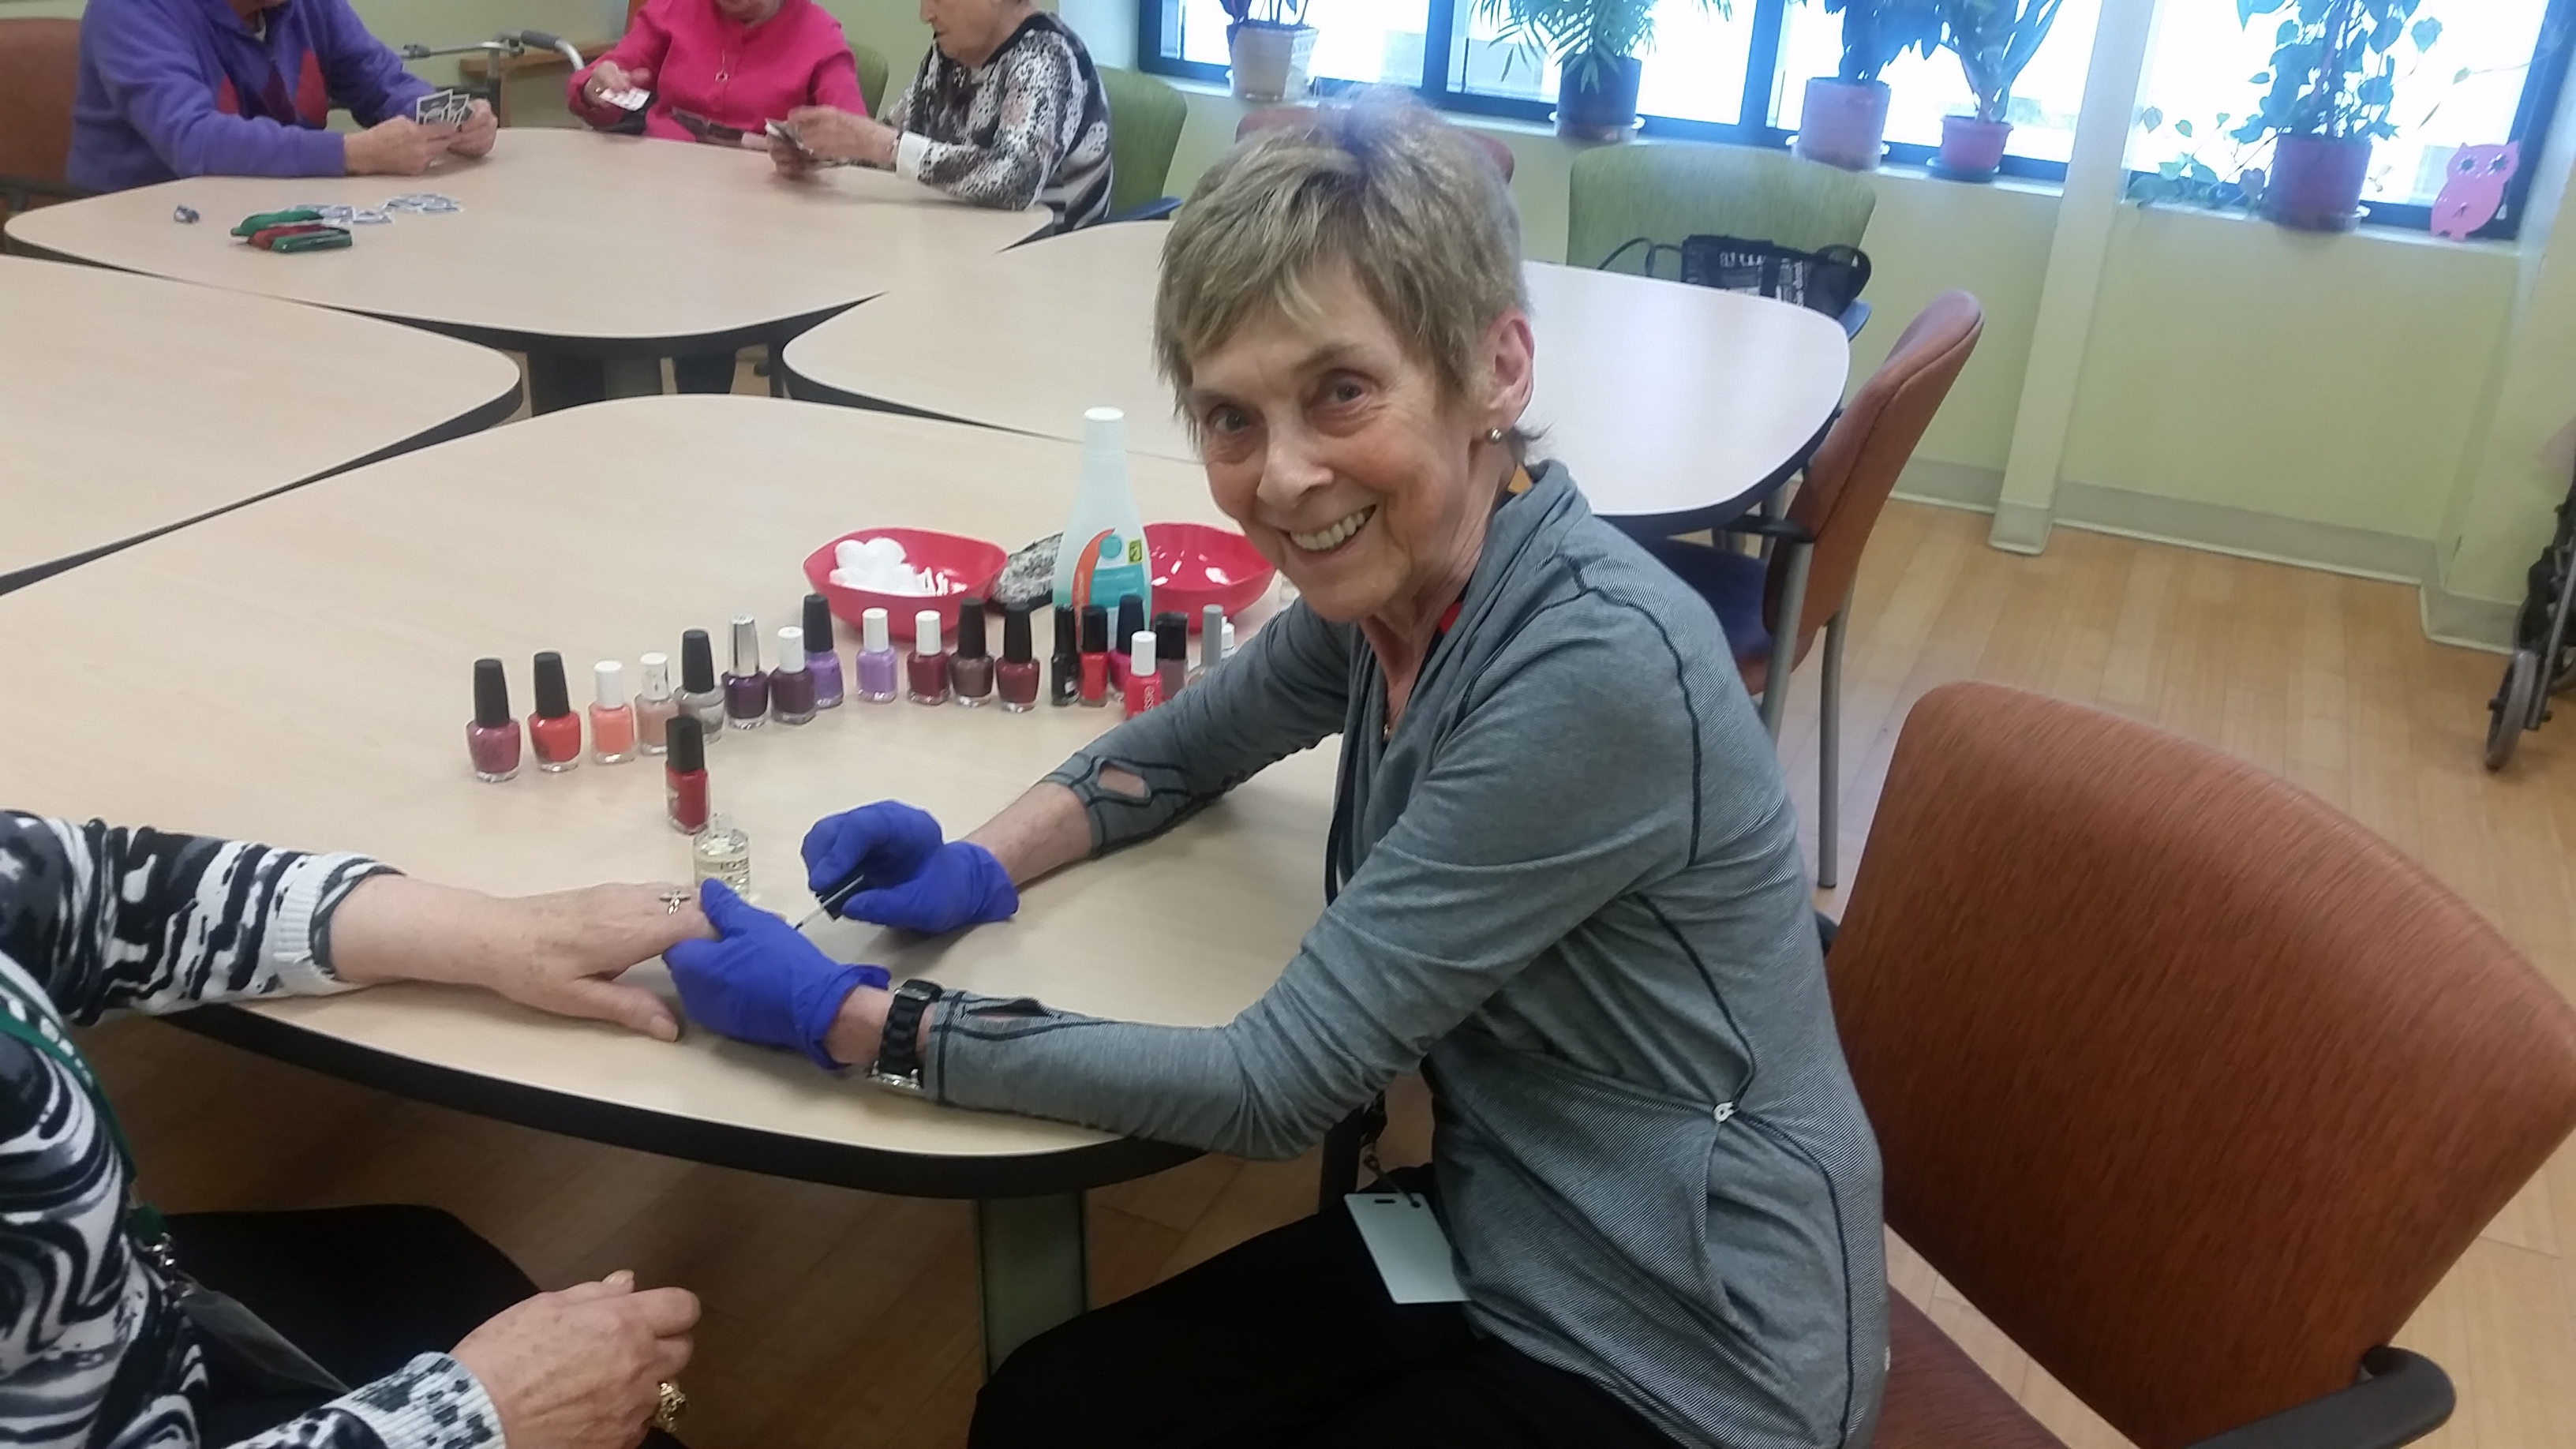 image of a volunteer painting a client's nails